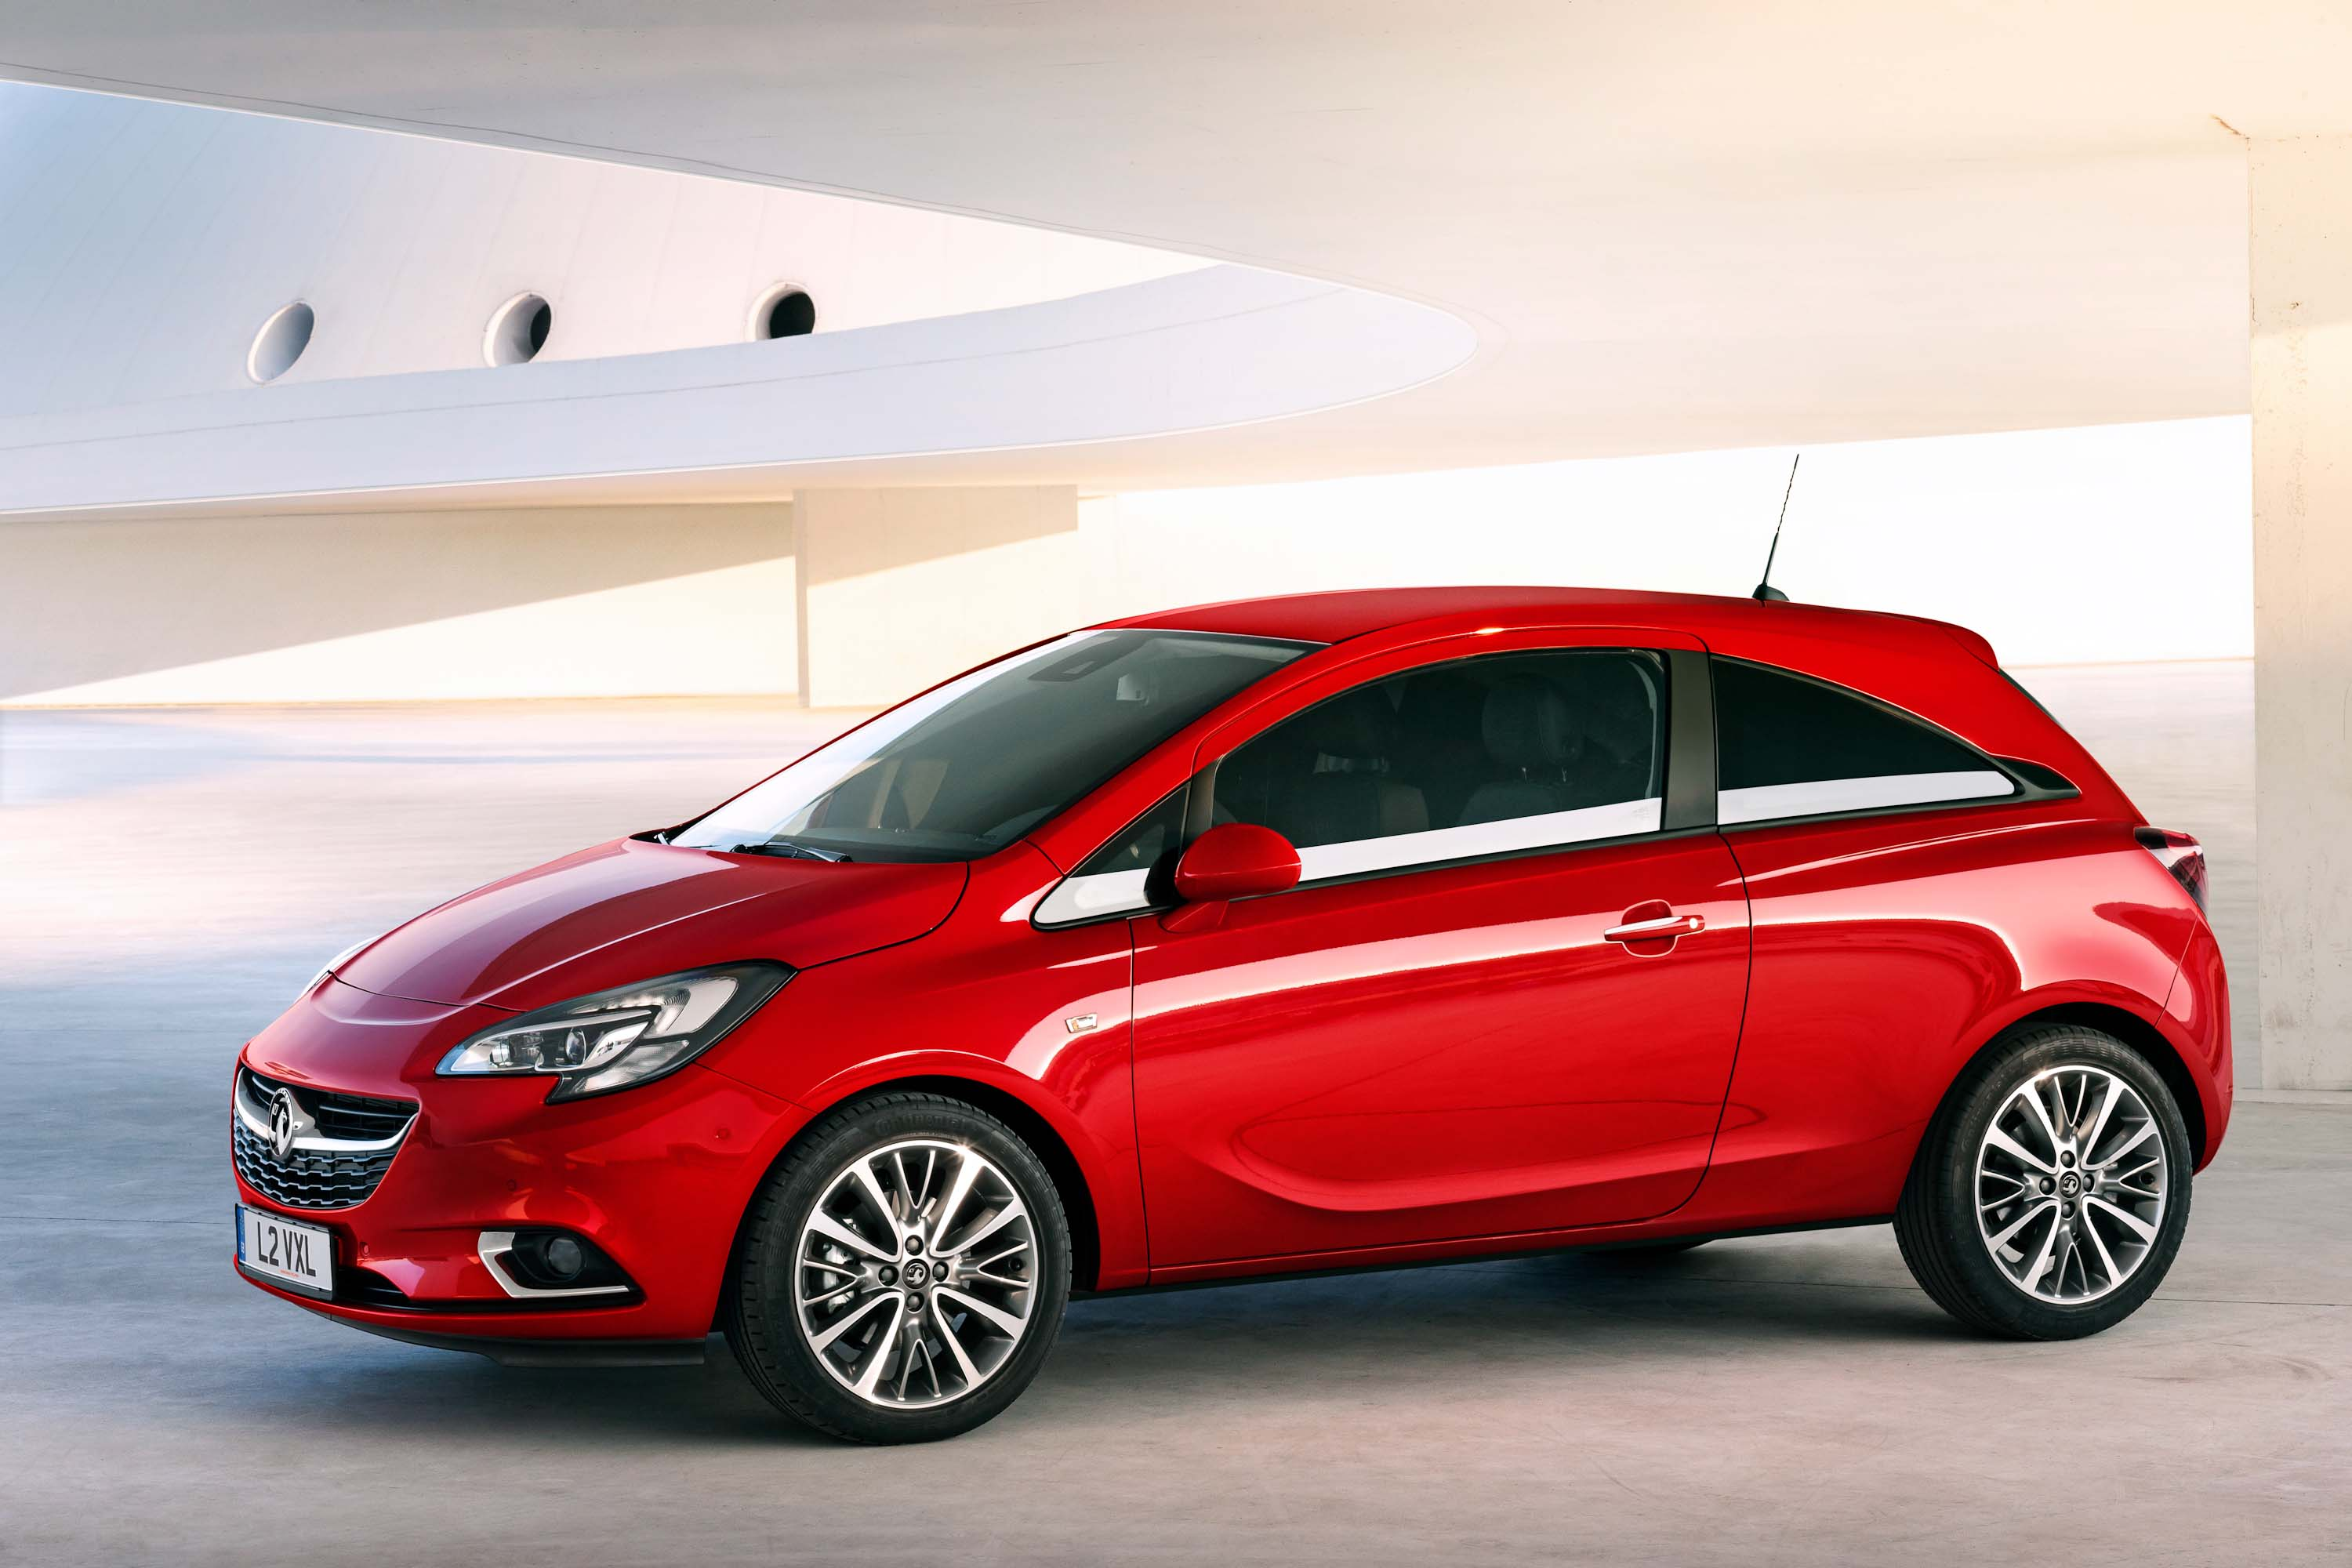 2015 opel vauxhall corsa e facelift looks sort of new is. Black Bedroom Furniture Sets. Home Design Ideas